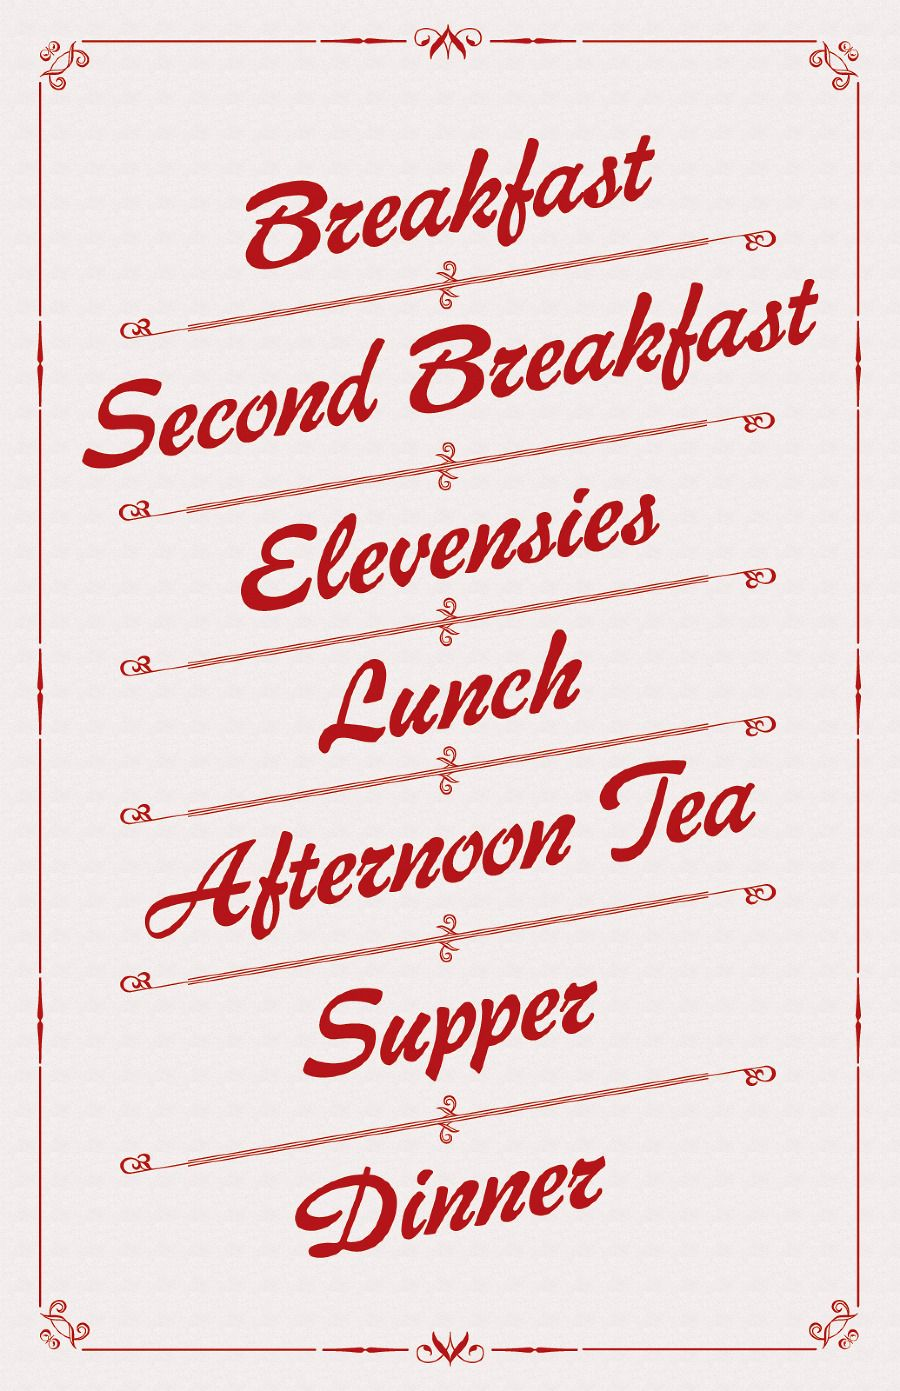 But what about second breakfast!?\